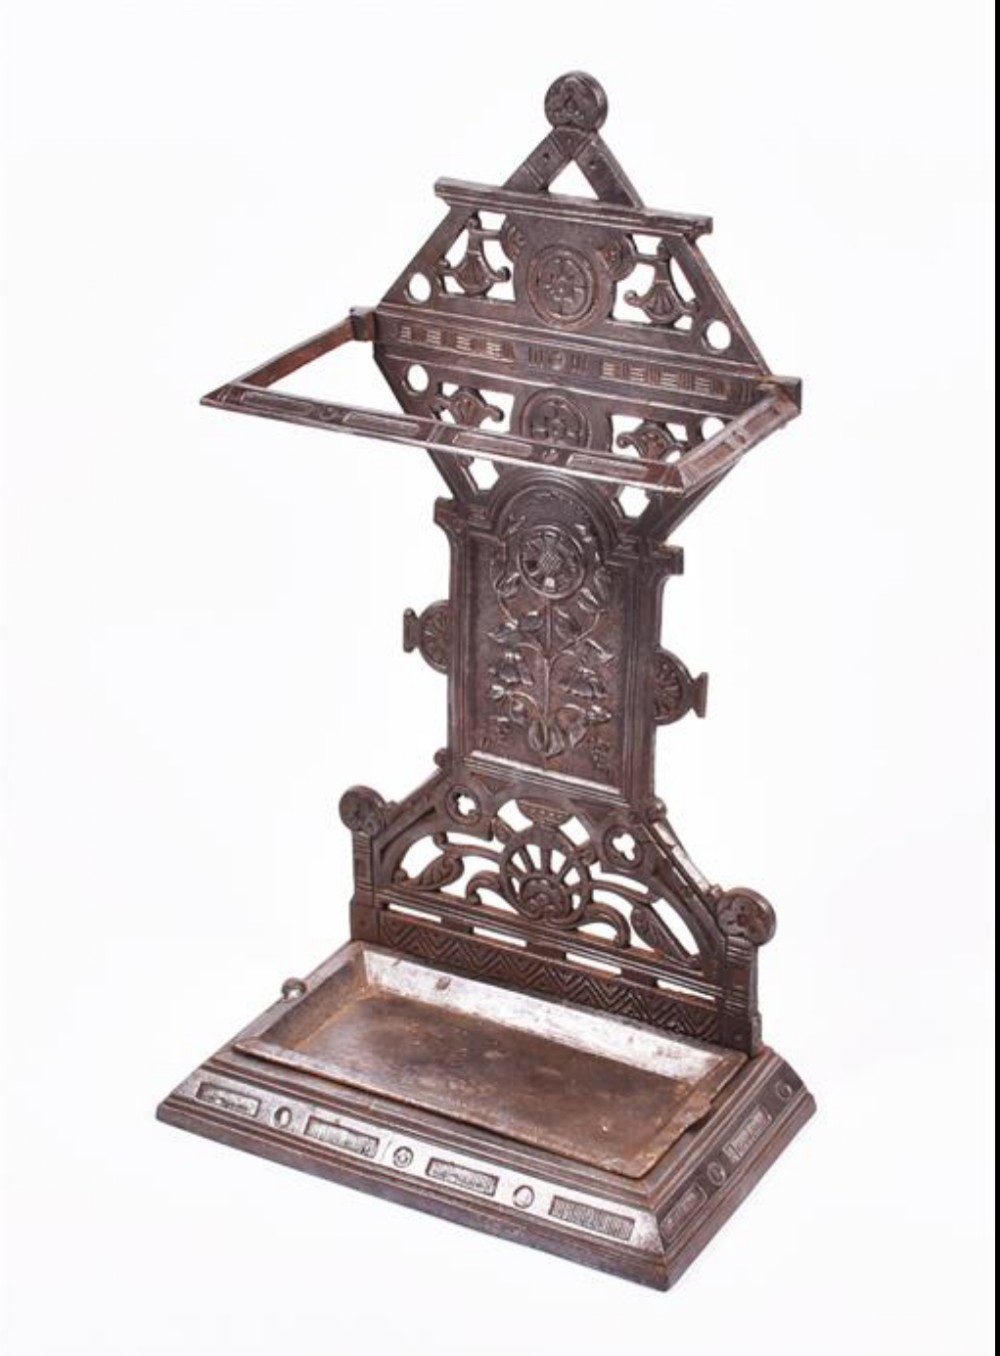 thomas jekyll 18271881 cast iron umbrella stand